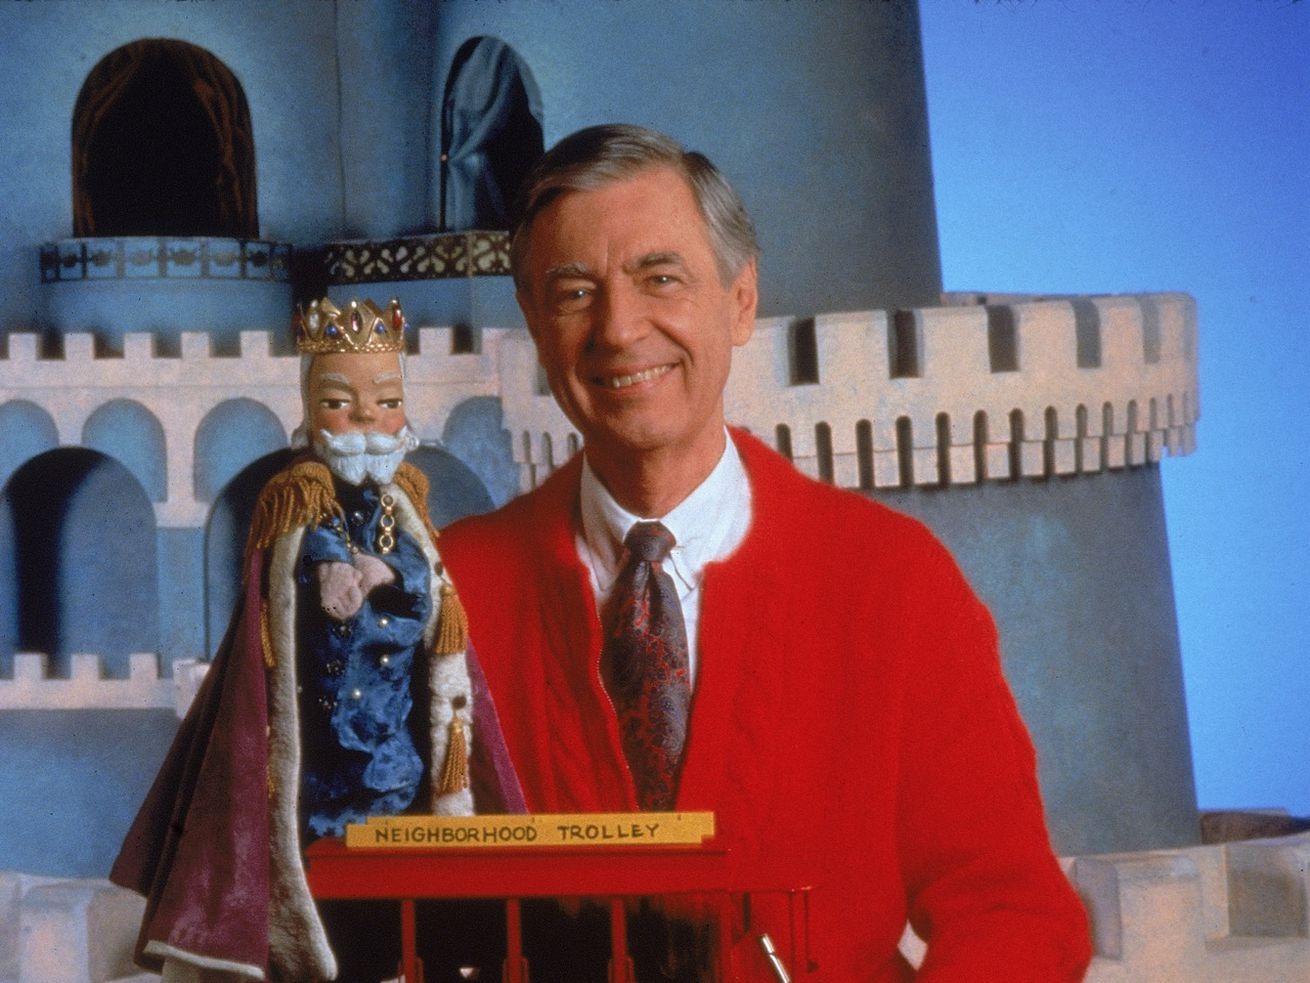 Fred Rogers, host of Mister Rogers' Neighborhood, poses with the famous King Friday puppet from his show.